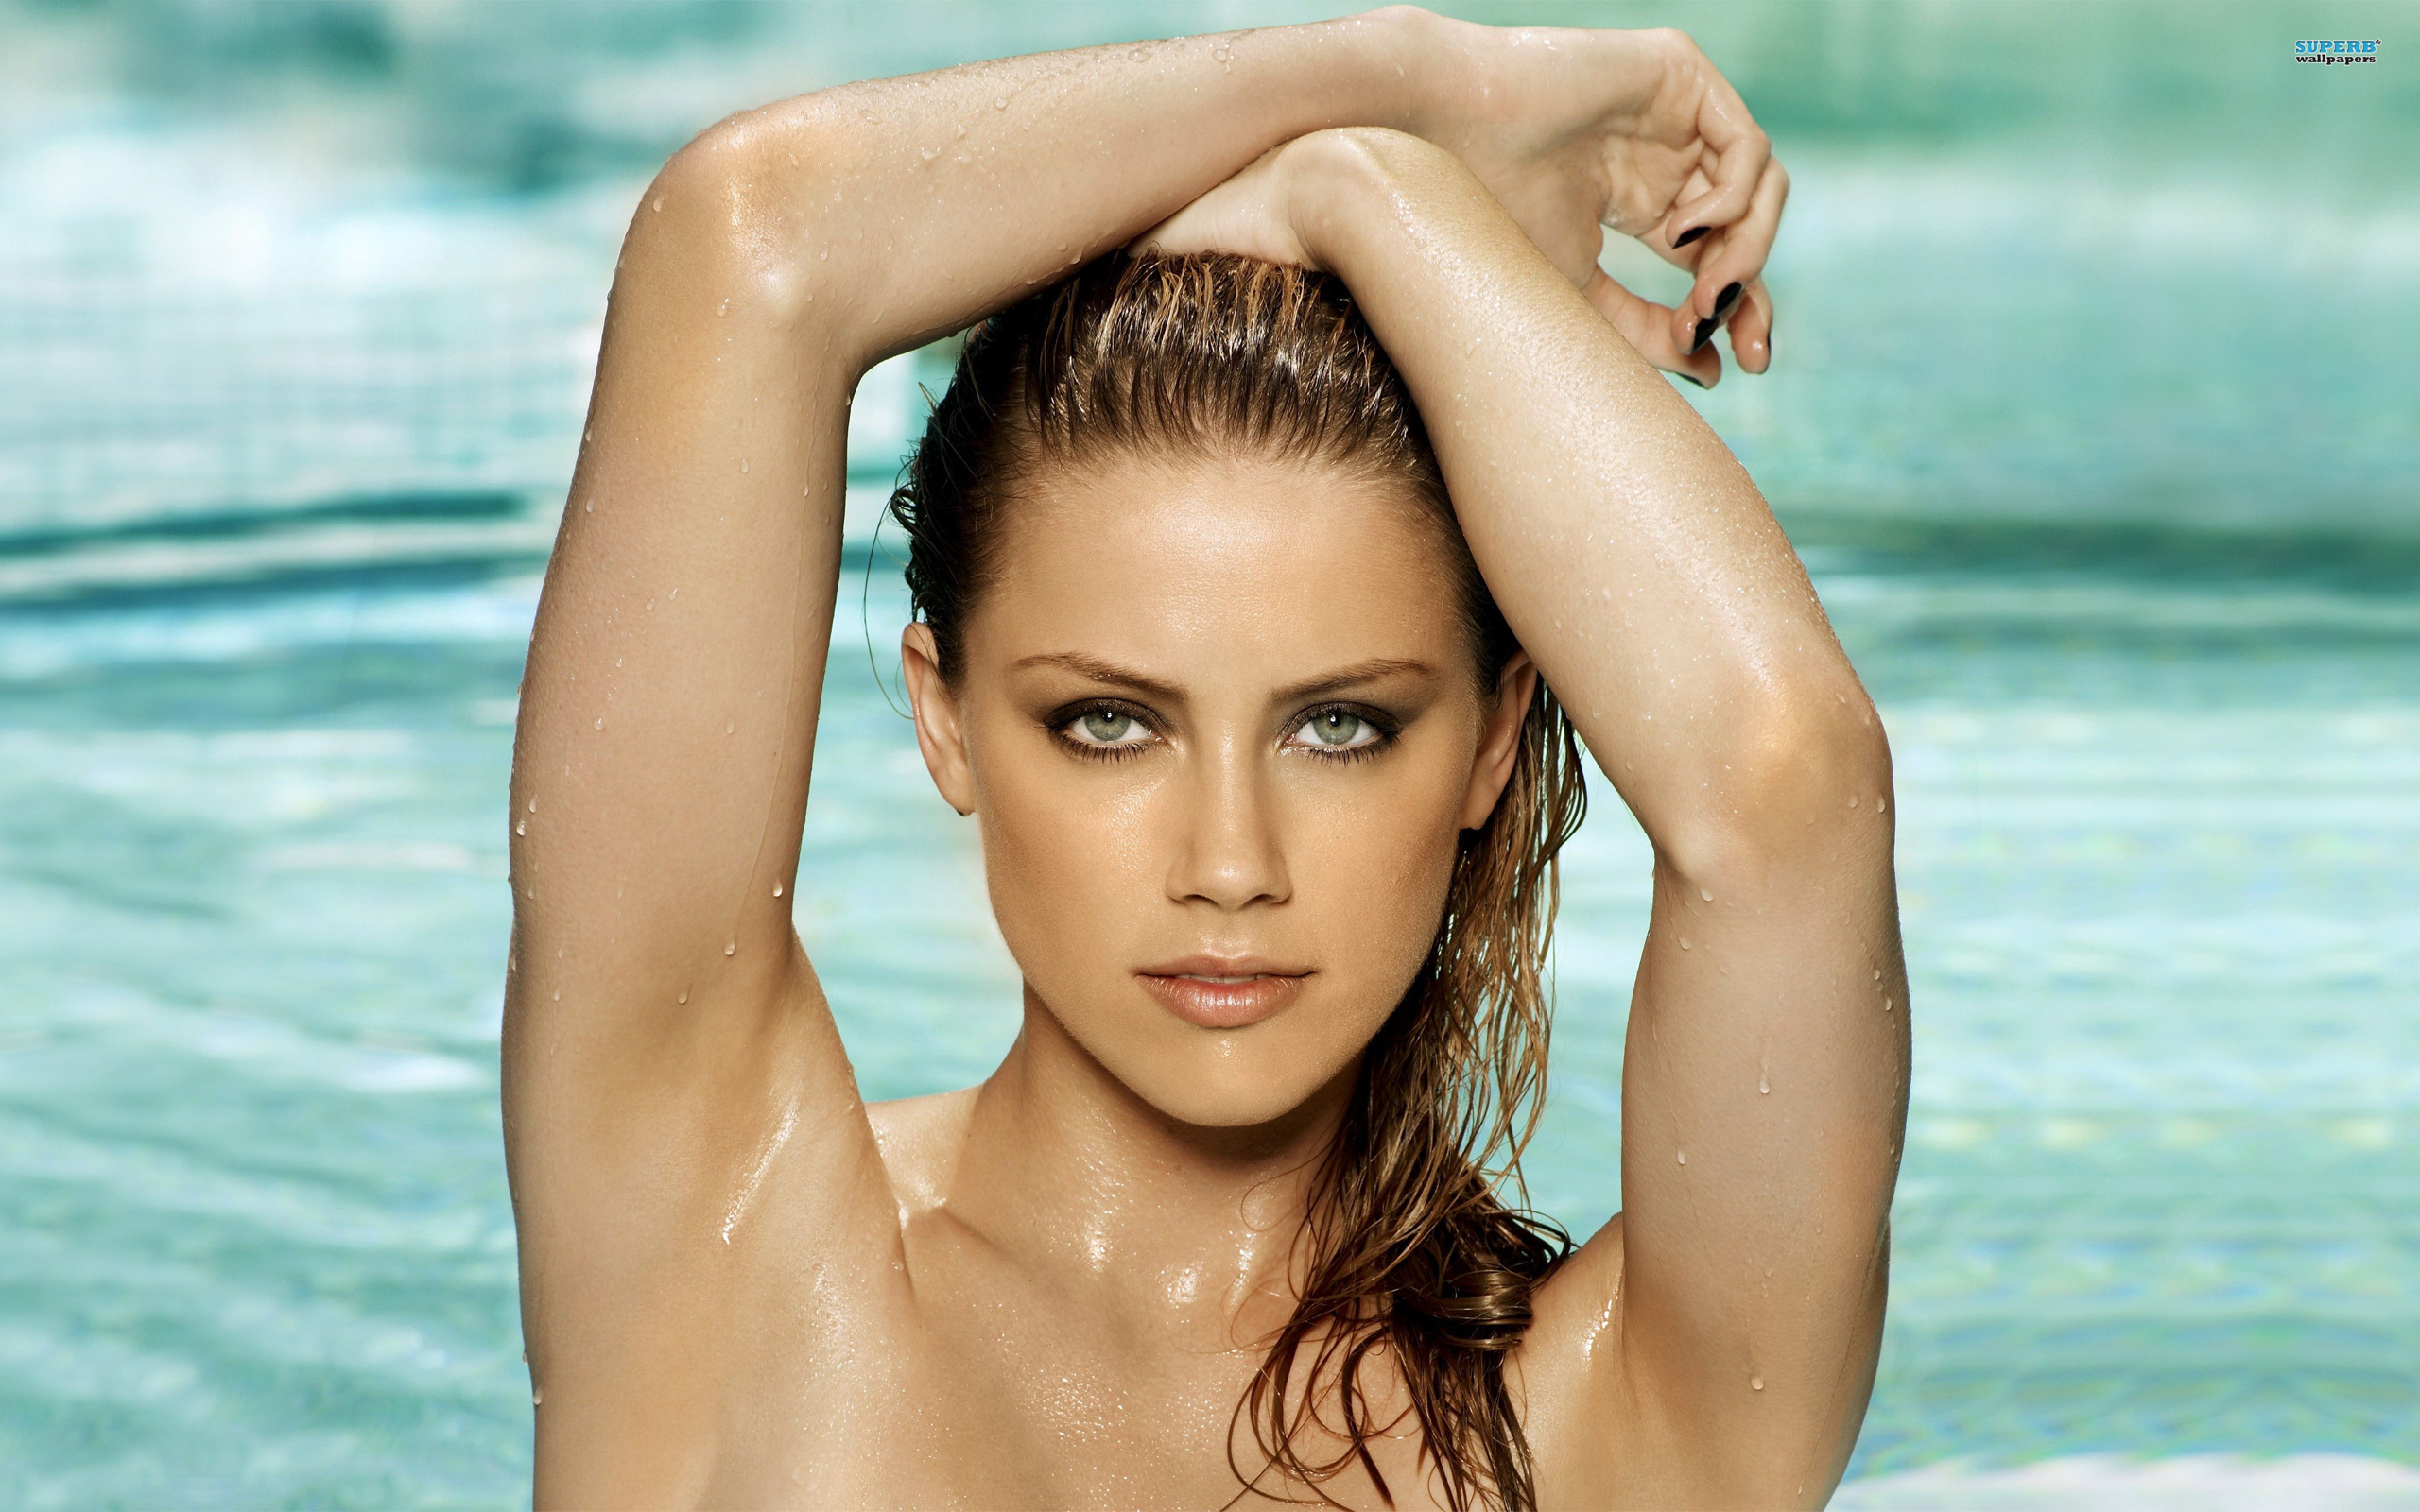 Picture Amber Heard - Amber Heard Swimming Pool , HD Wallpaper & Backgrounds